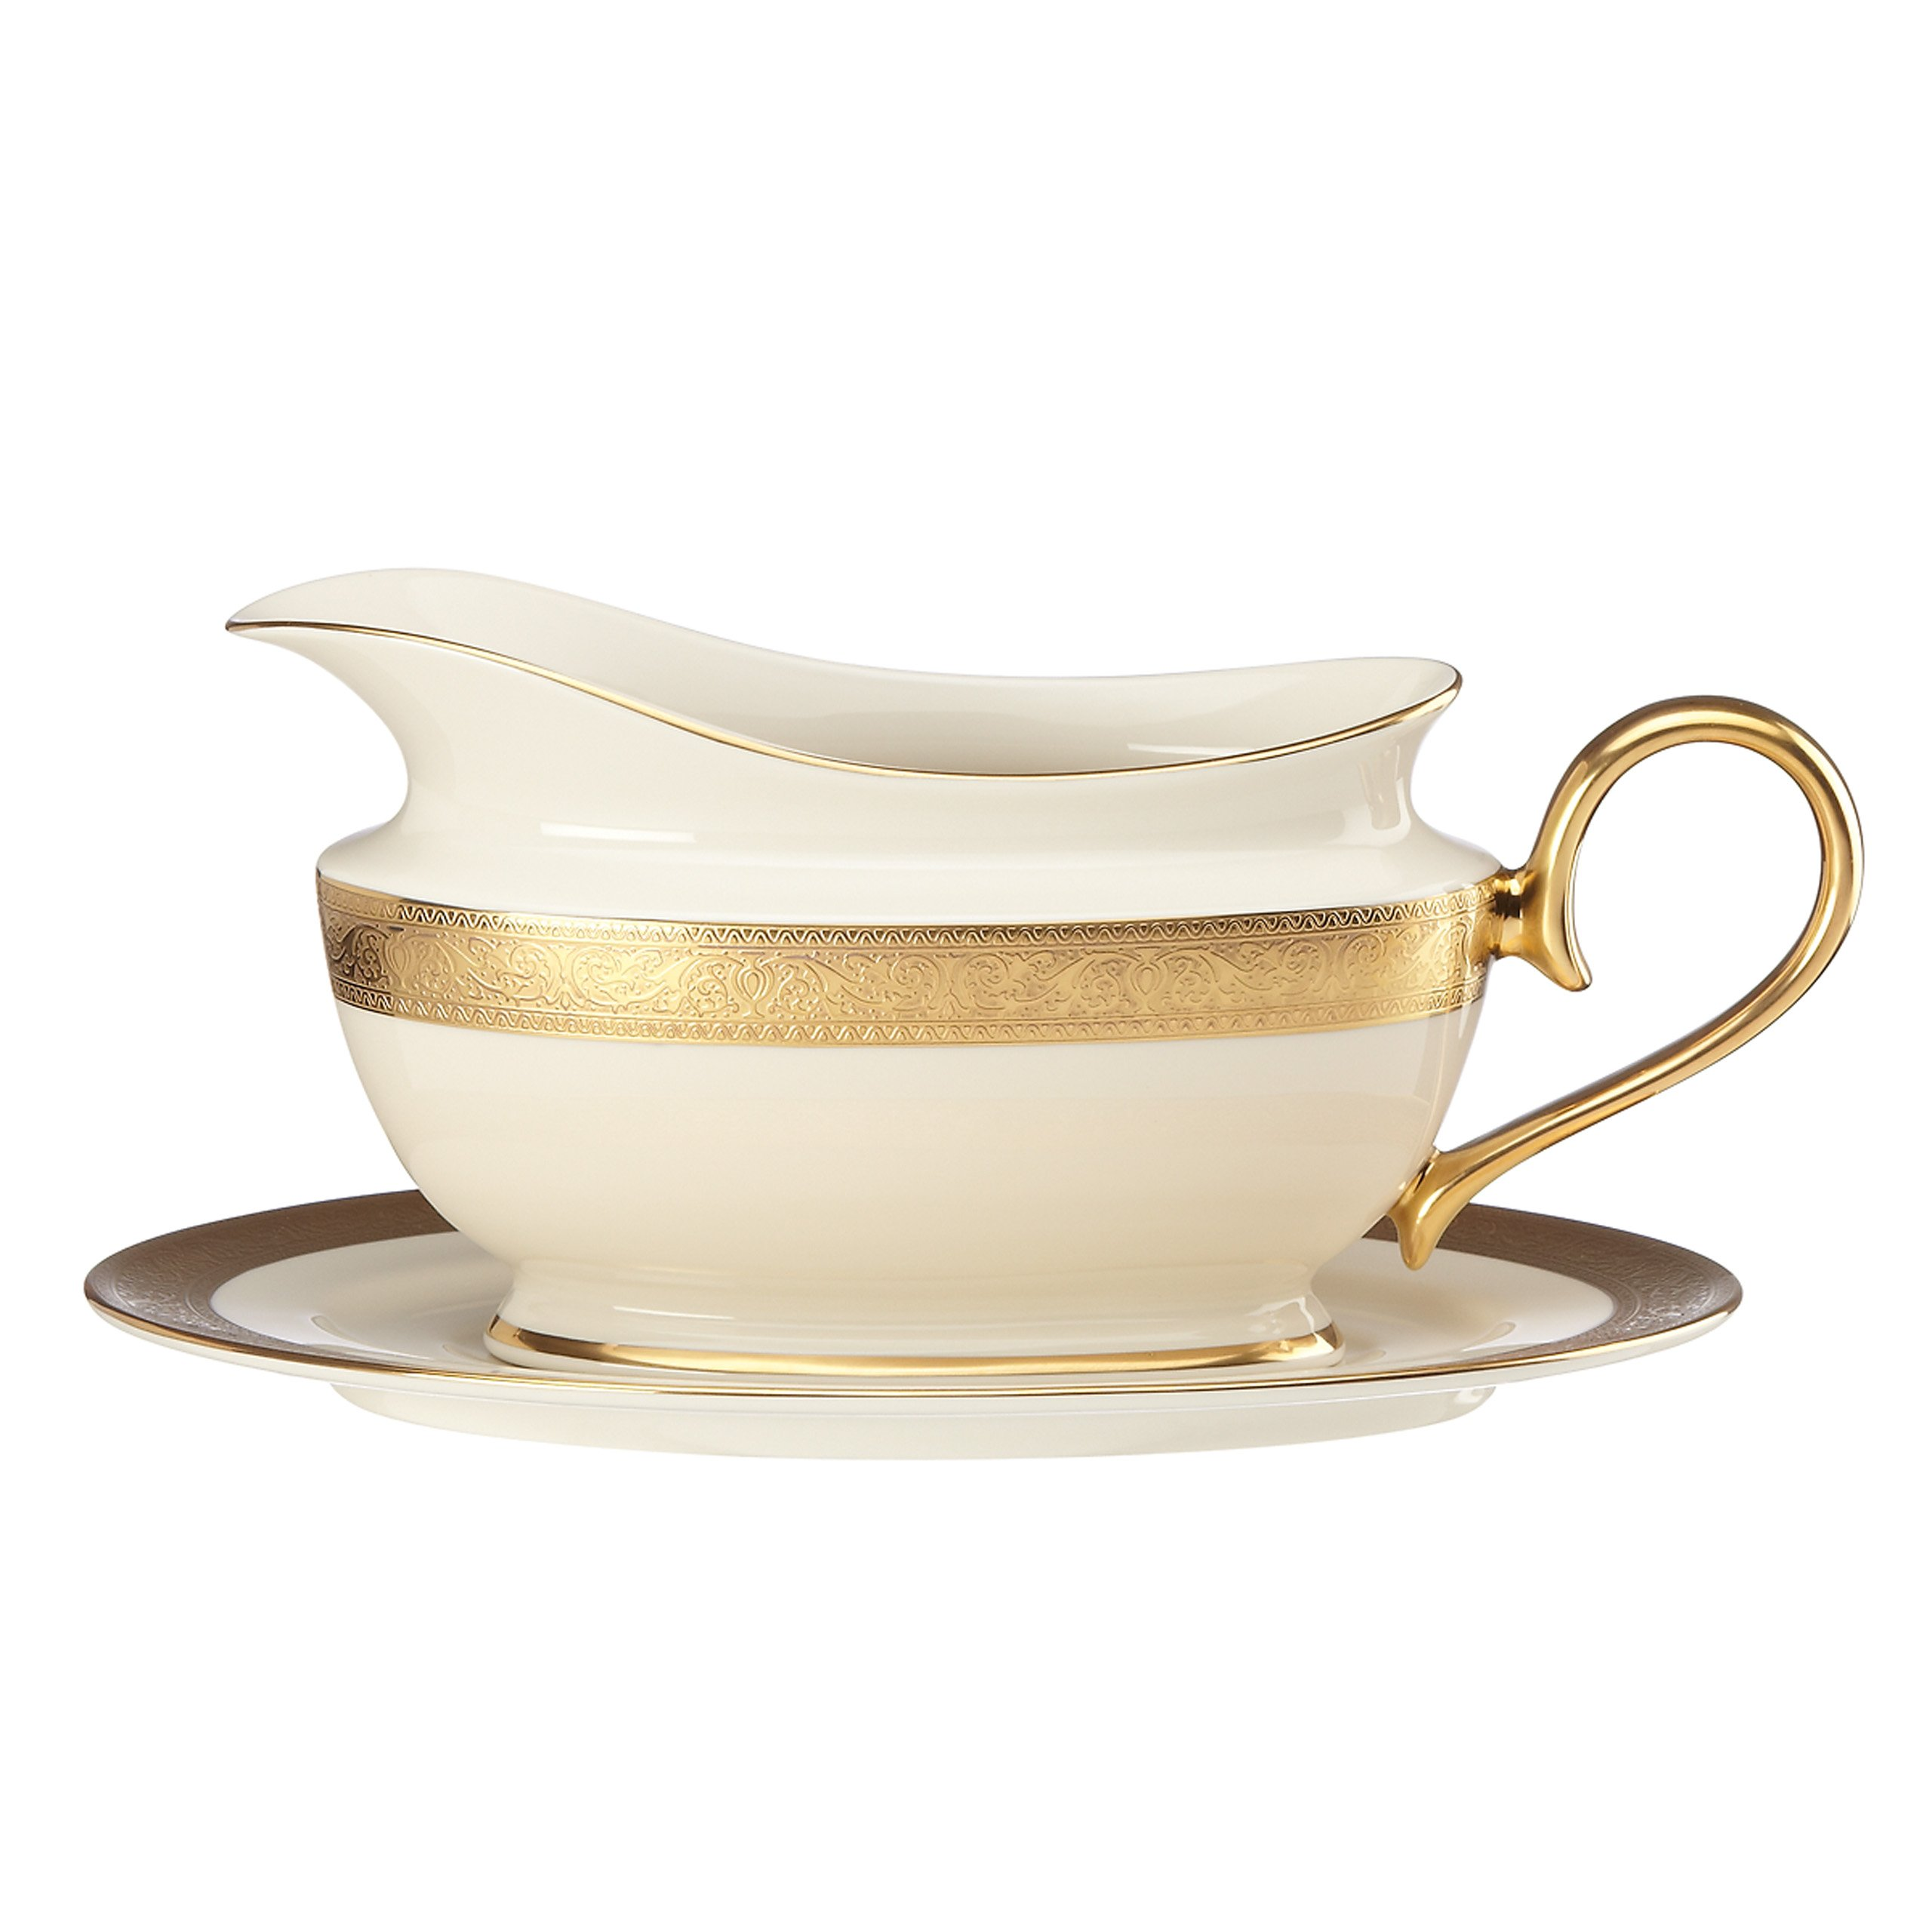 Lenox Westchester Sauce Boat and Stand, Ivory